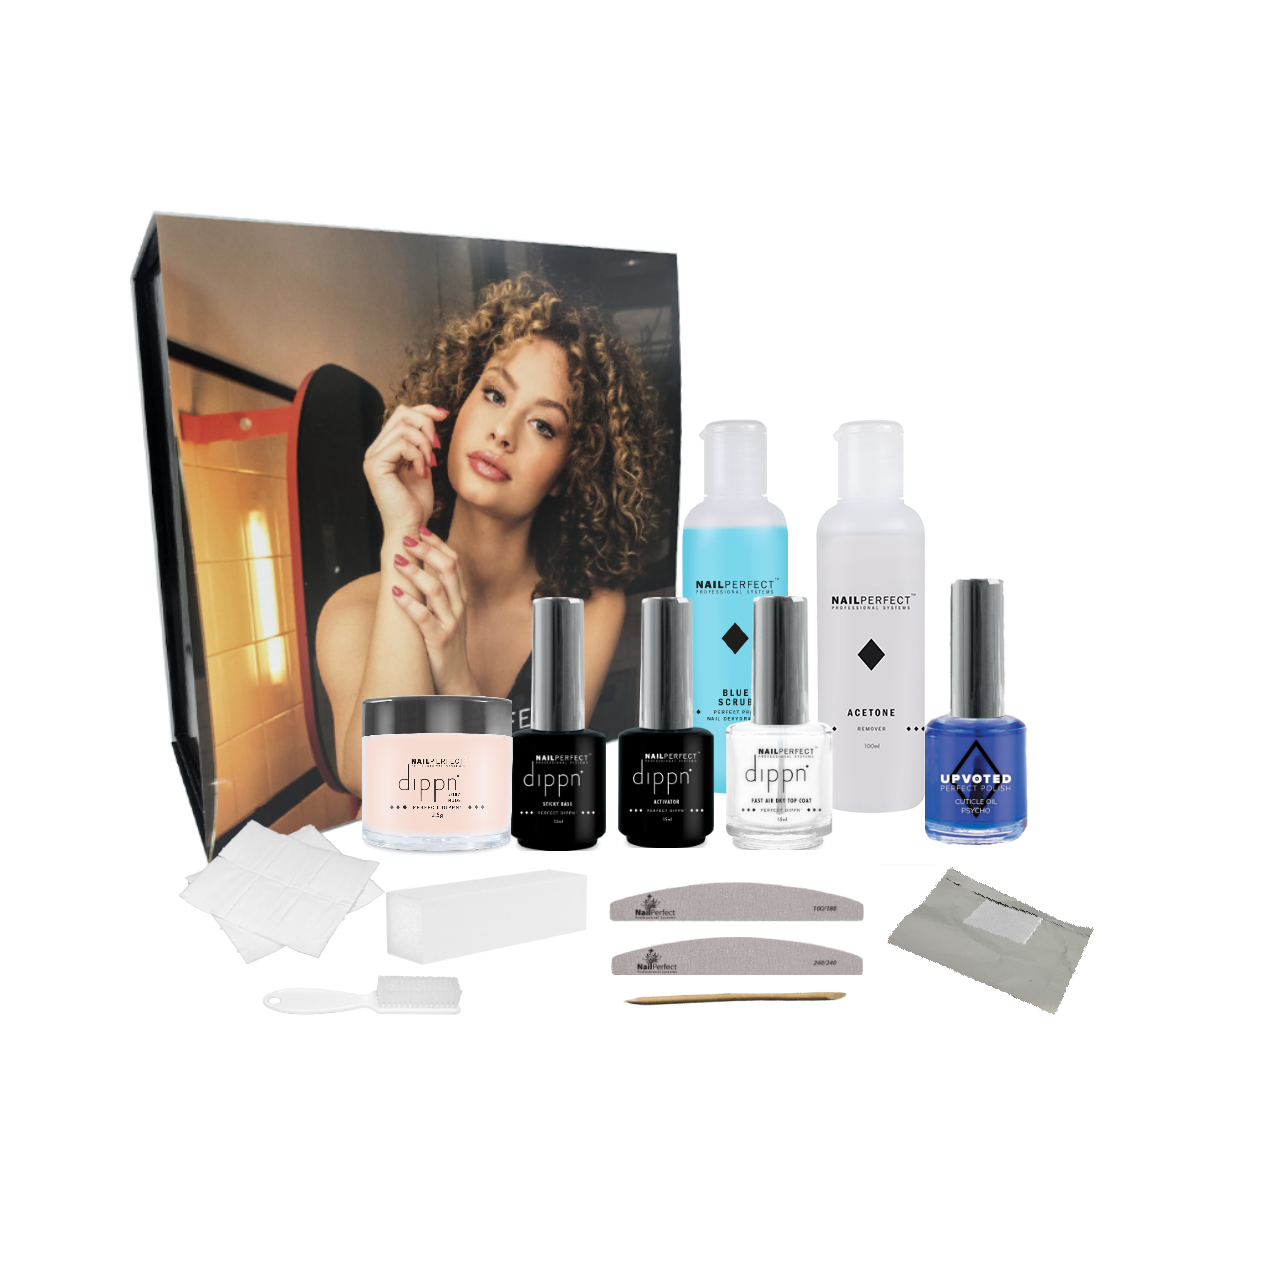 Nail Perfect Dippn' Get started kit